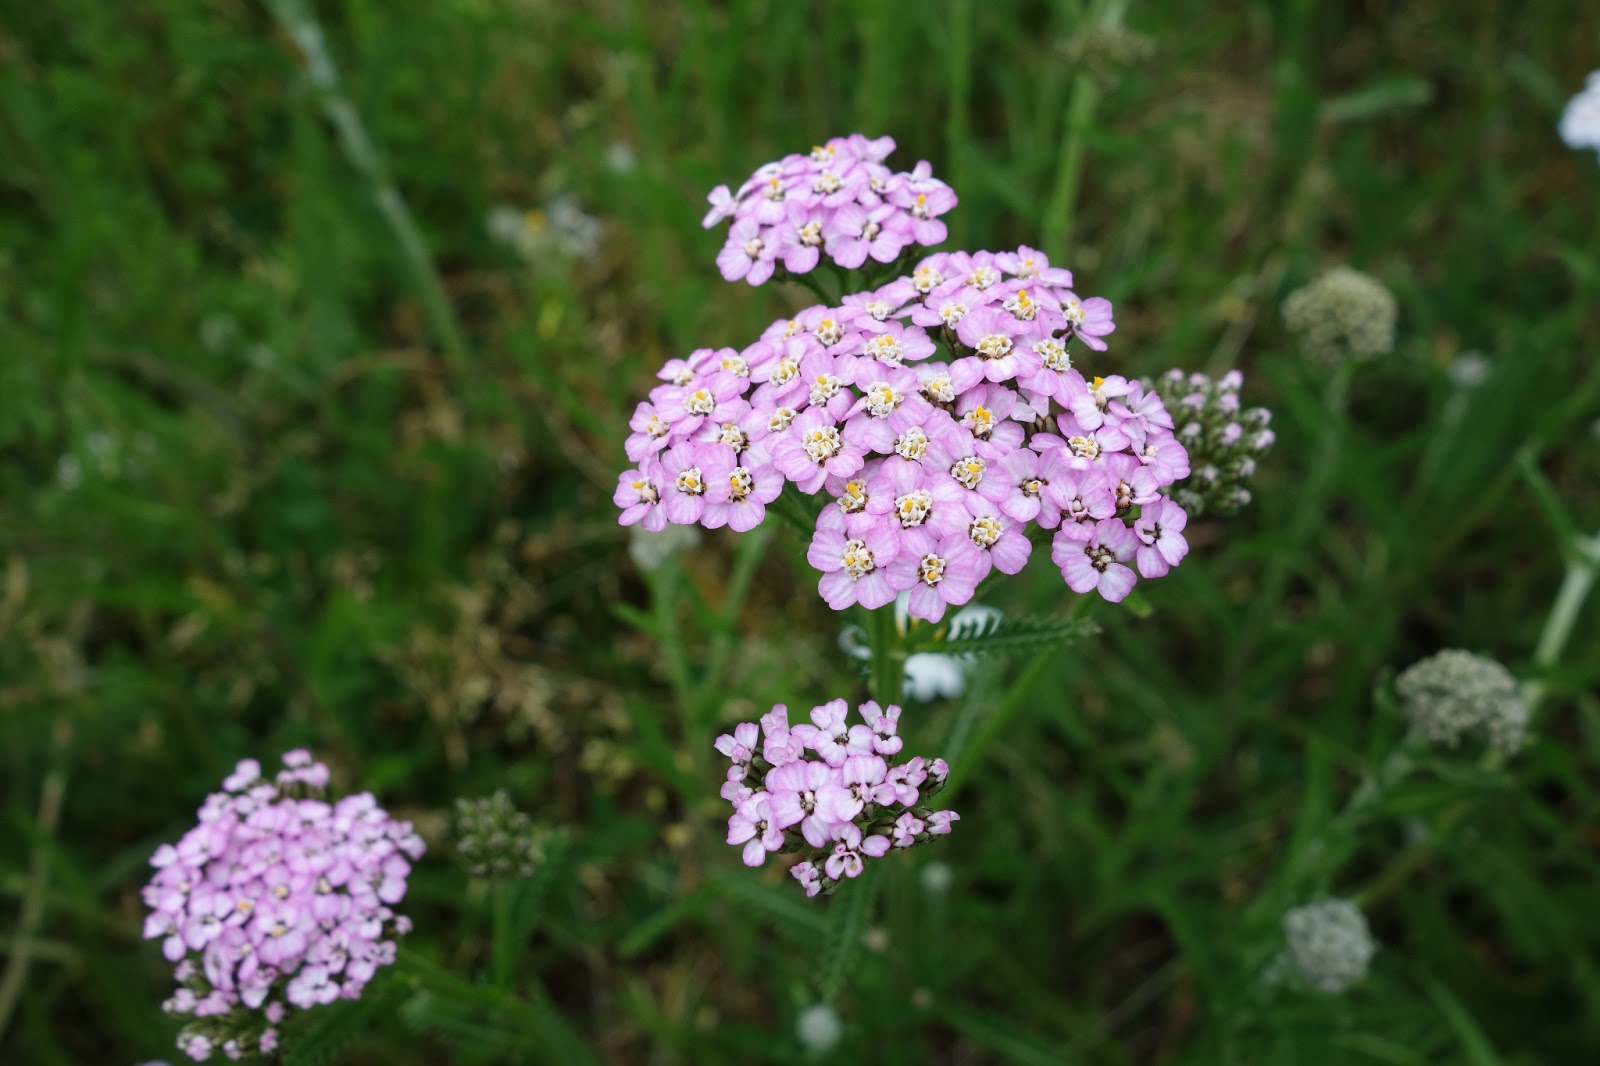 Flowering Time July September Flower Heads With Purple Ray Flowers In Picture Growing Together White Flowered Yarrow And Brown Bristly Phyllaries